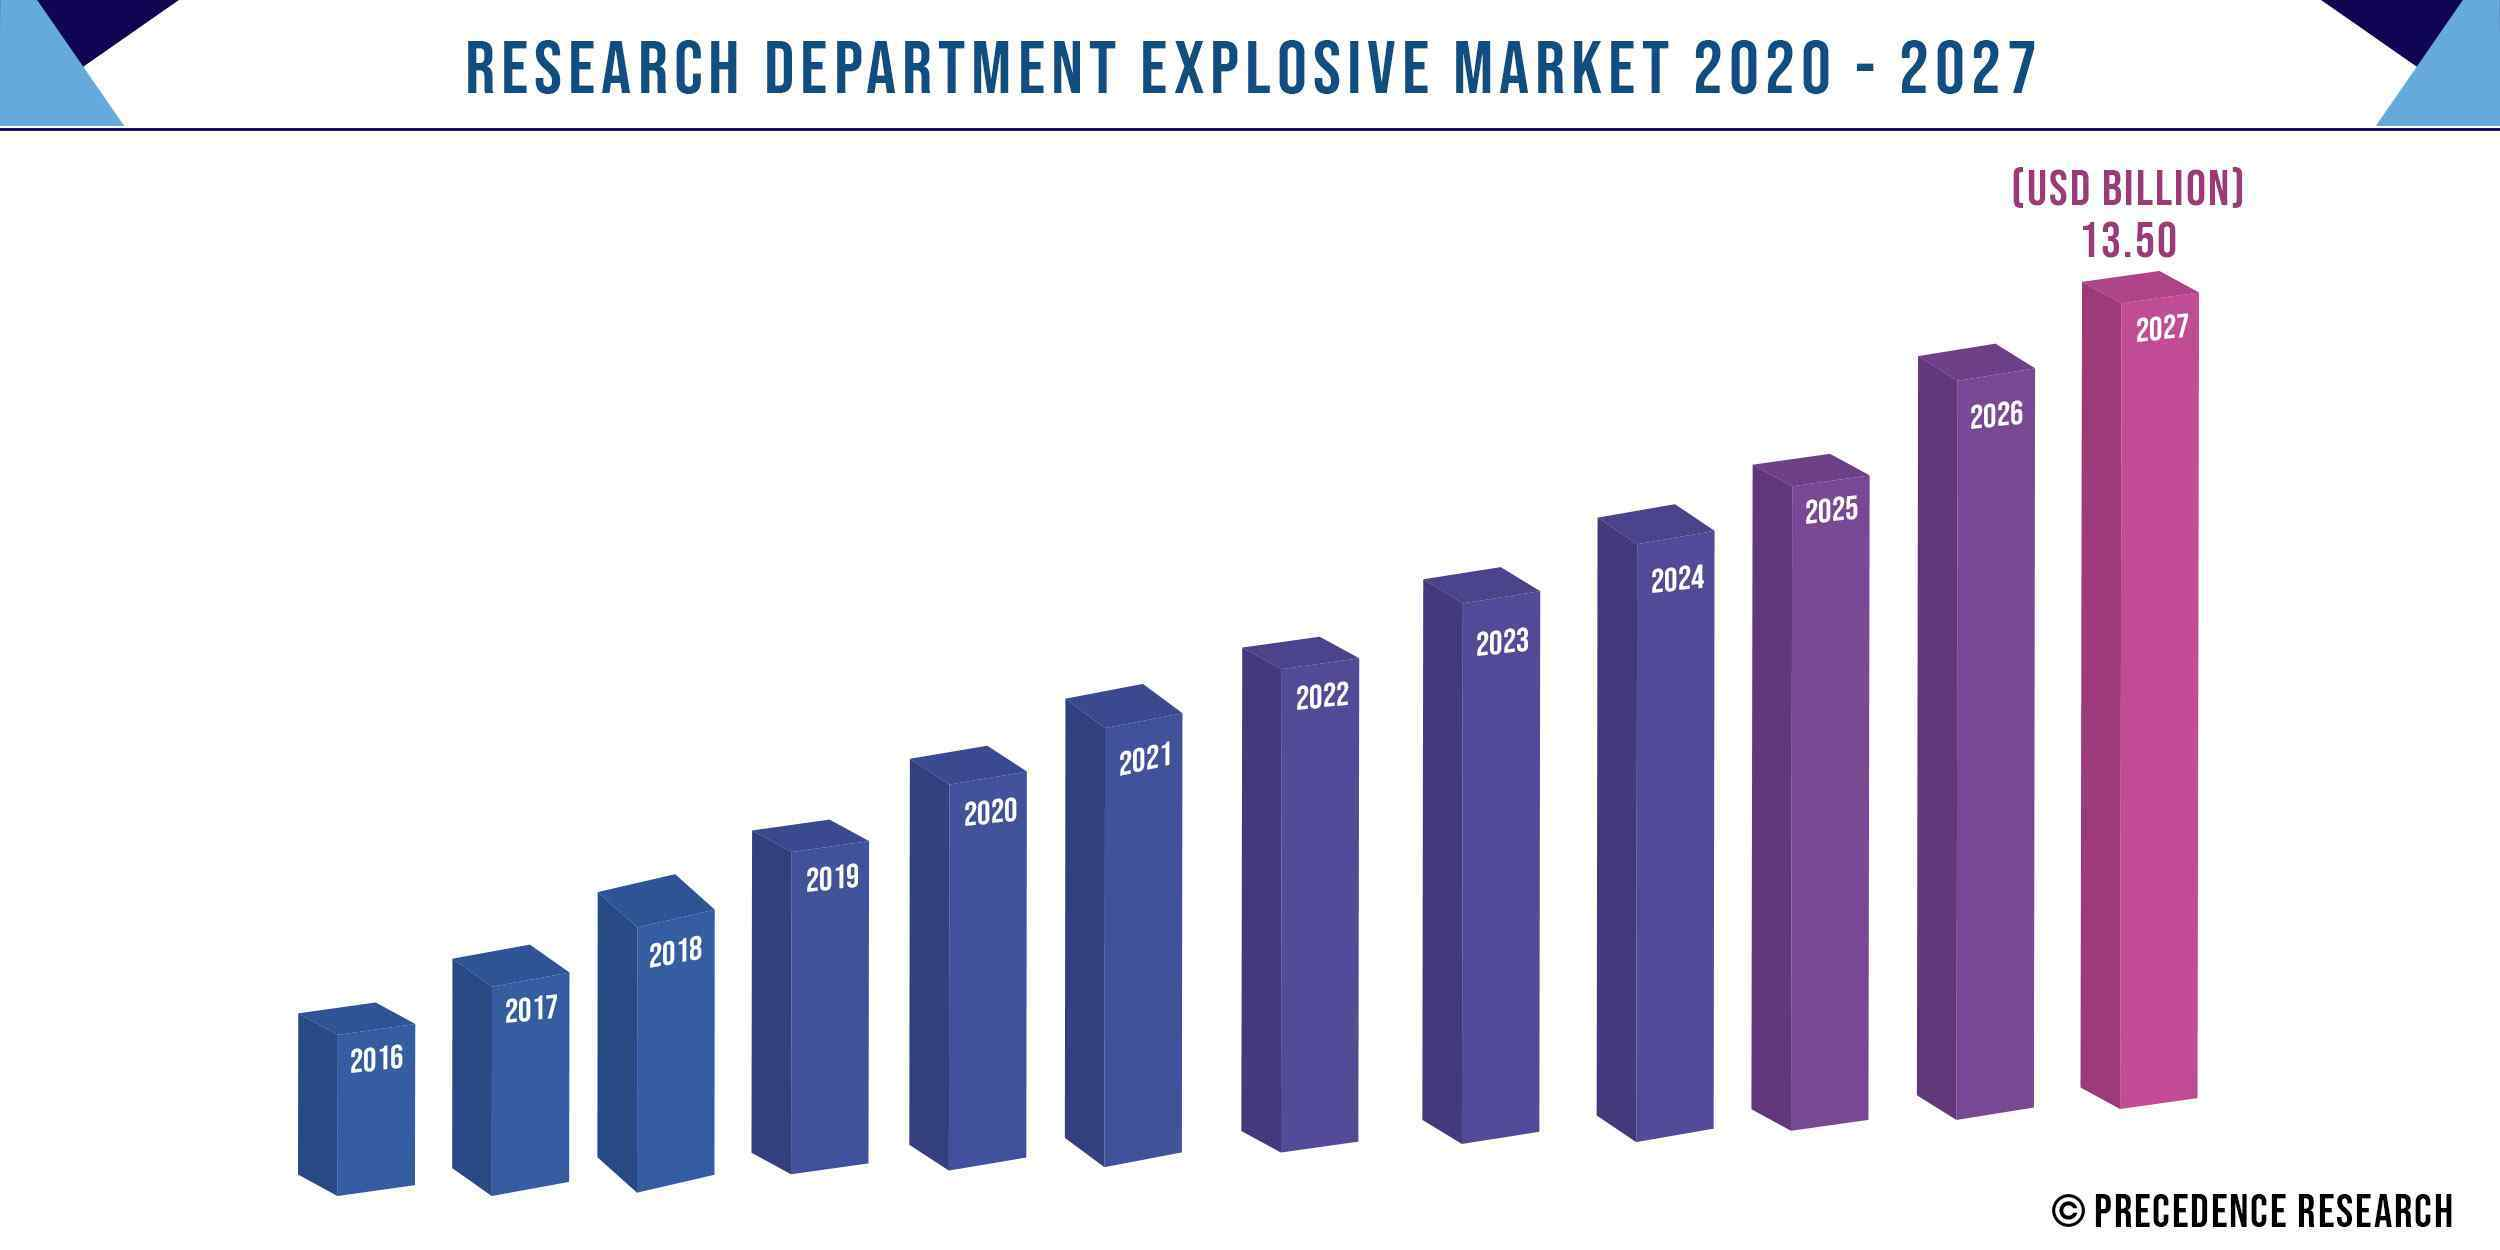 Research Department Explosive Market Size 2020 to 2027